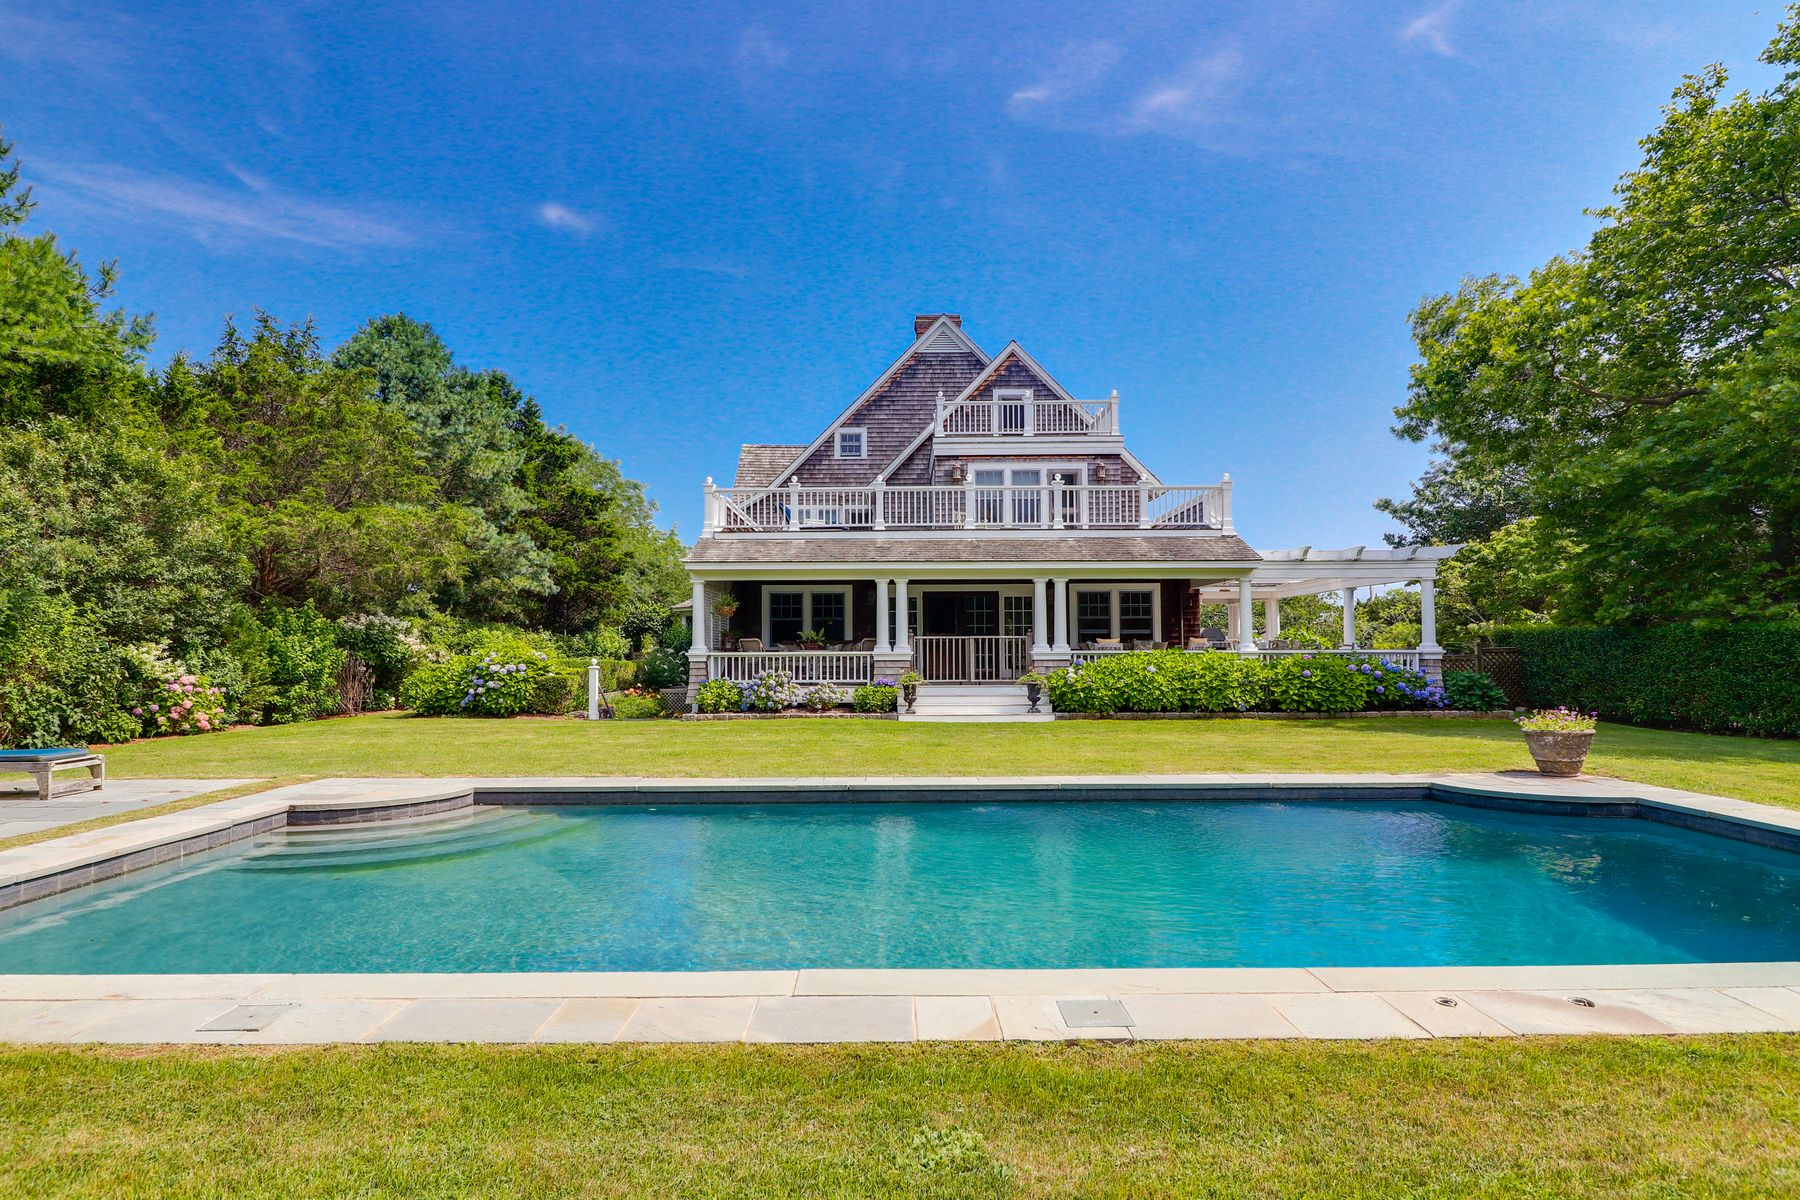 Single Family Home for Active at Oceanviews In Amagansett South 332 Bluff Road Amagansett, New York 11930 United States